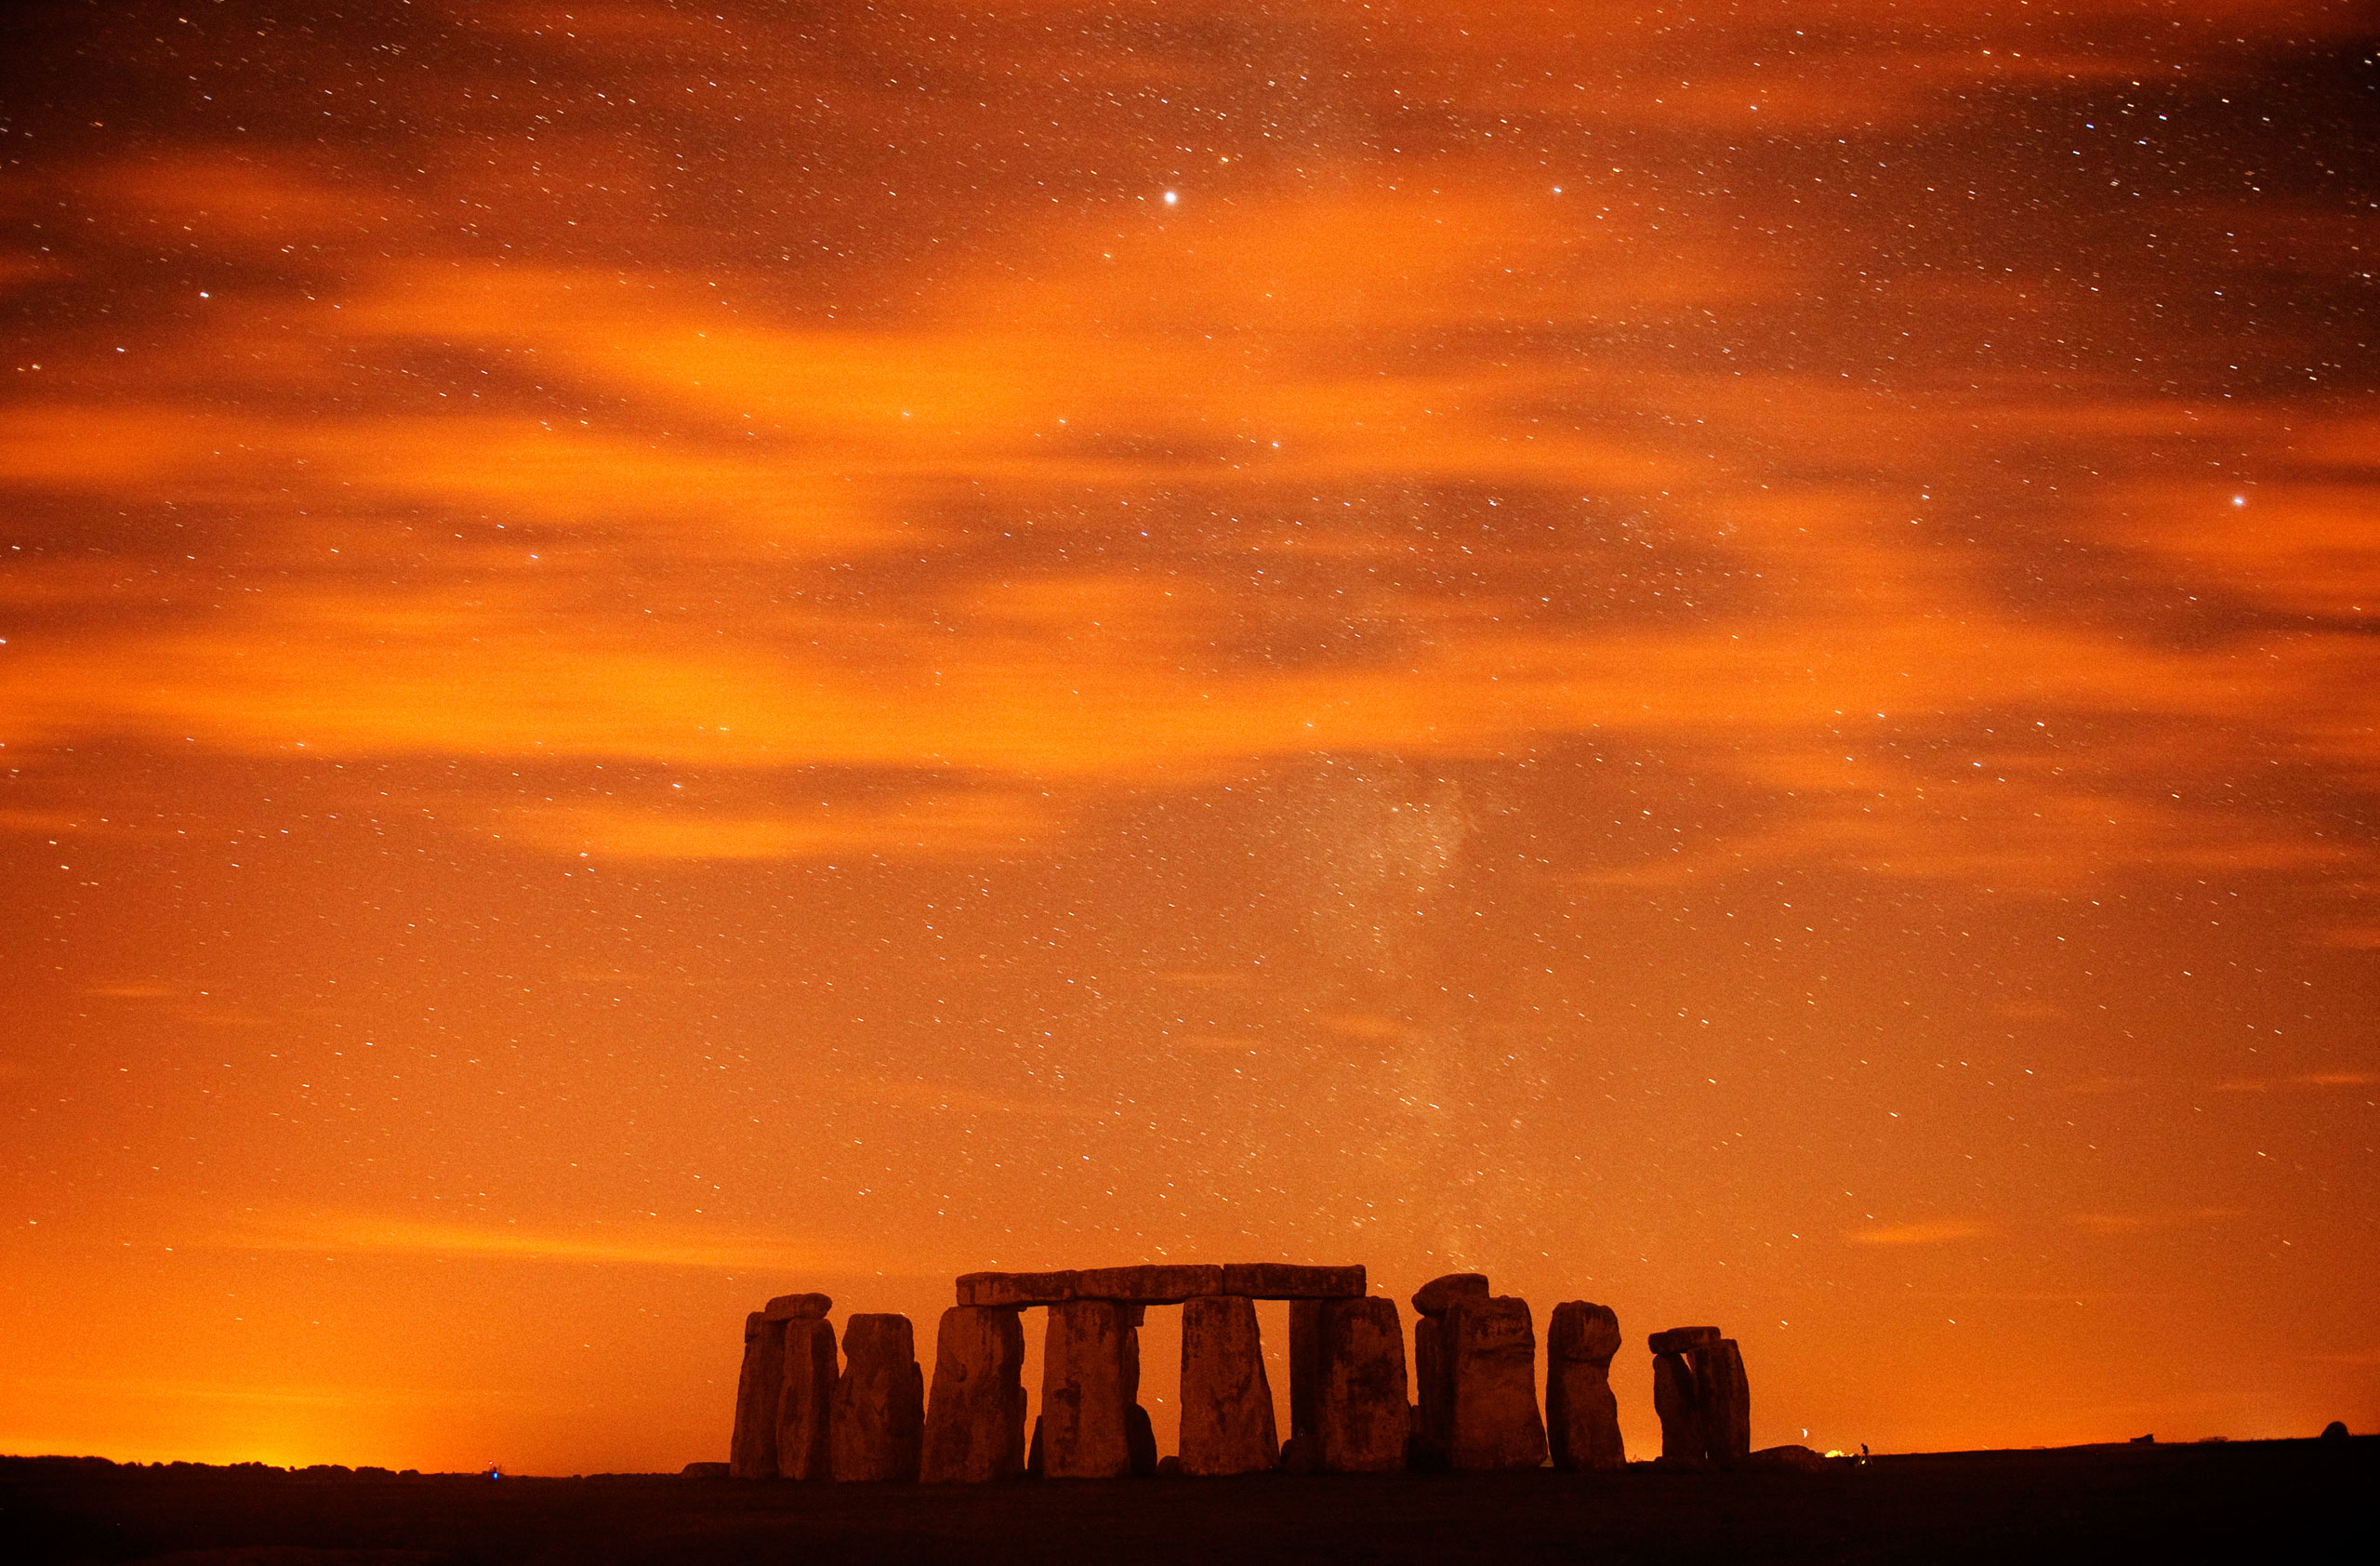 Stonehenge during a Perseid meteor shower  in Salisbury Plain, England on Aug. 13, 2013.